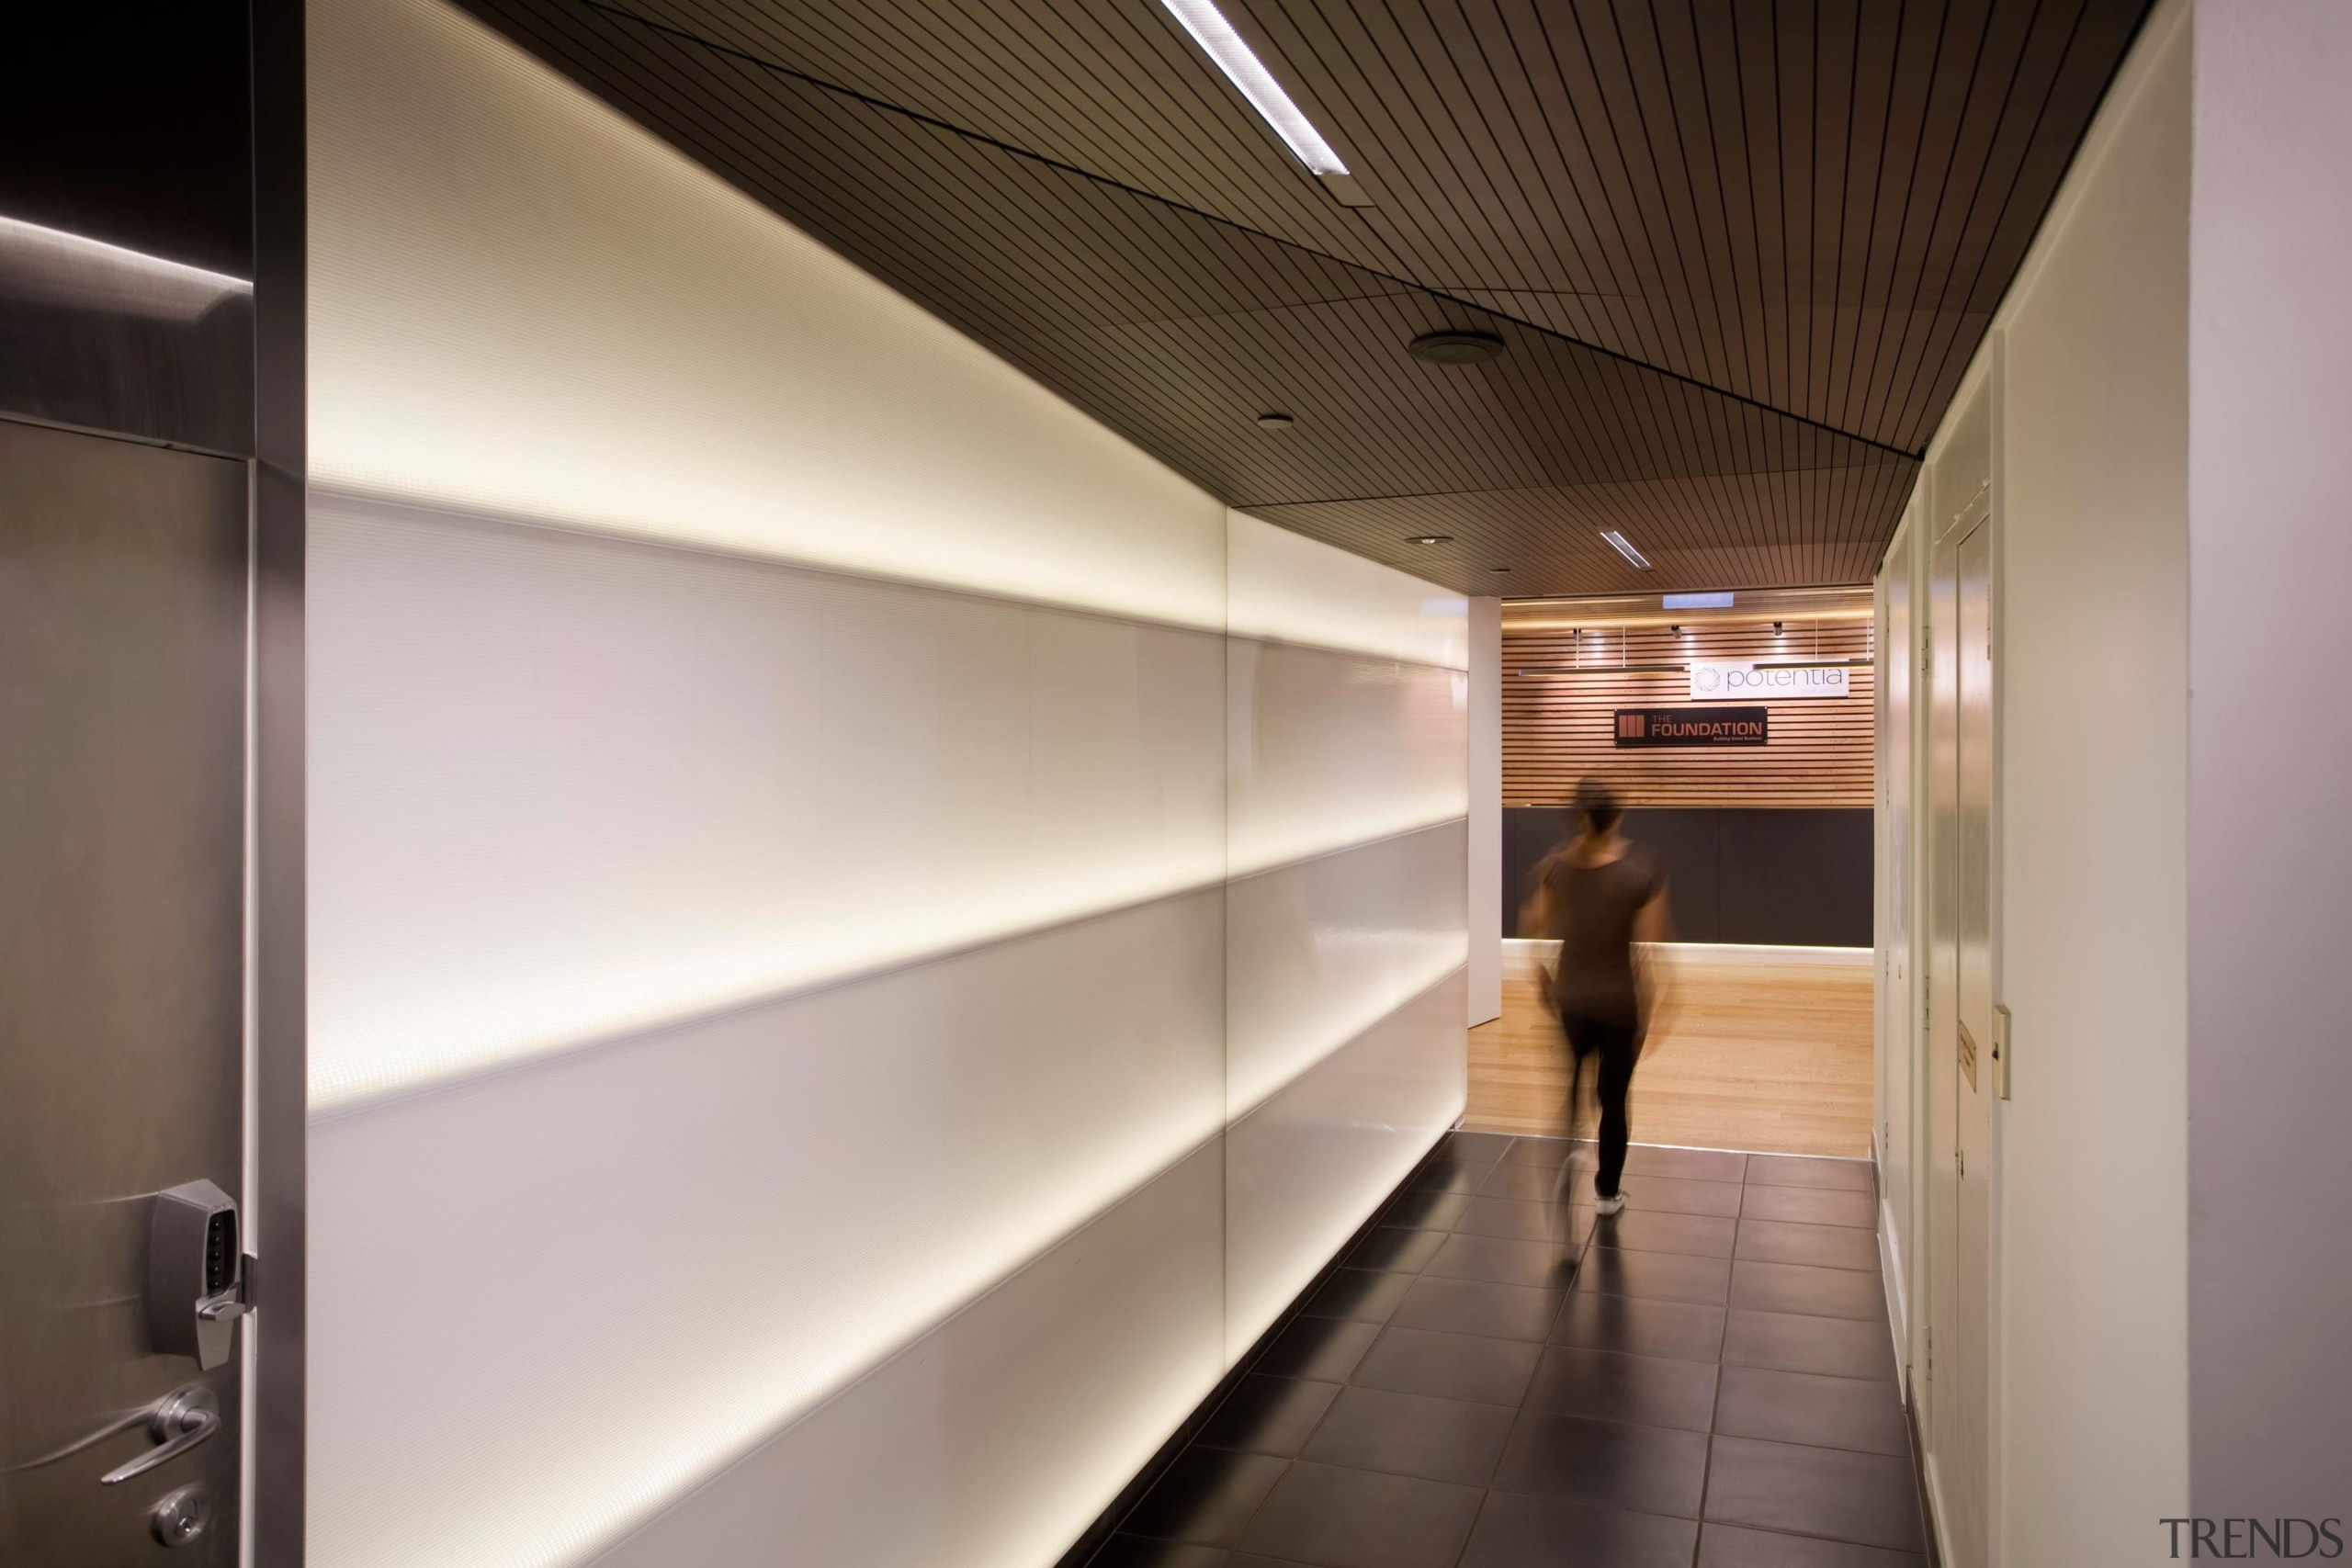 Horizontal lines of the back-lit polycarbonate wall panels architecture, ceiling, interior design, gray